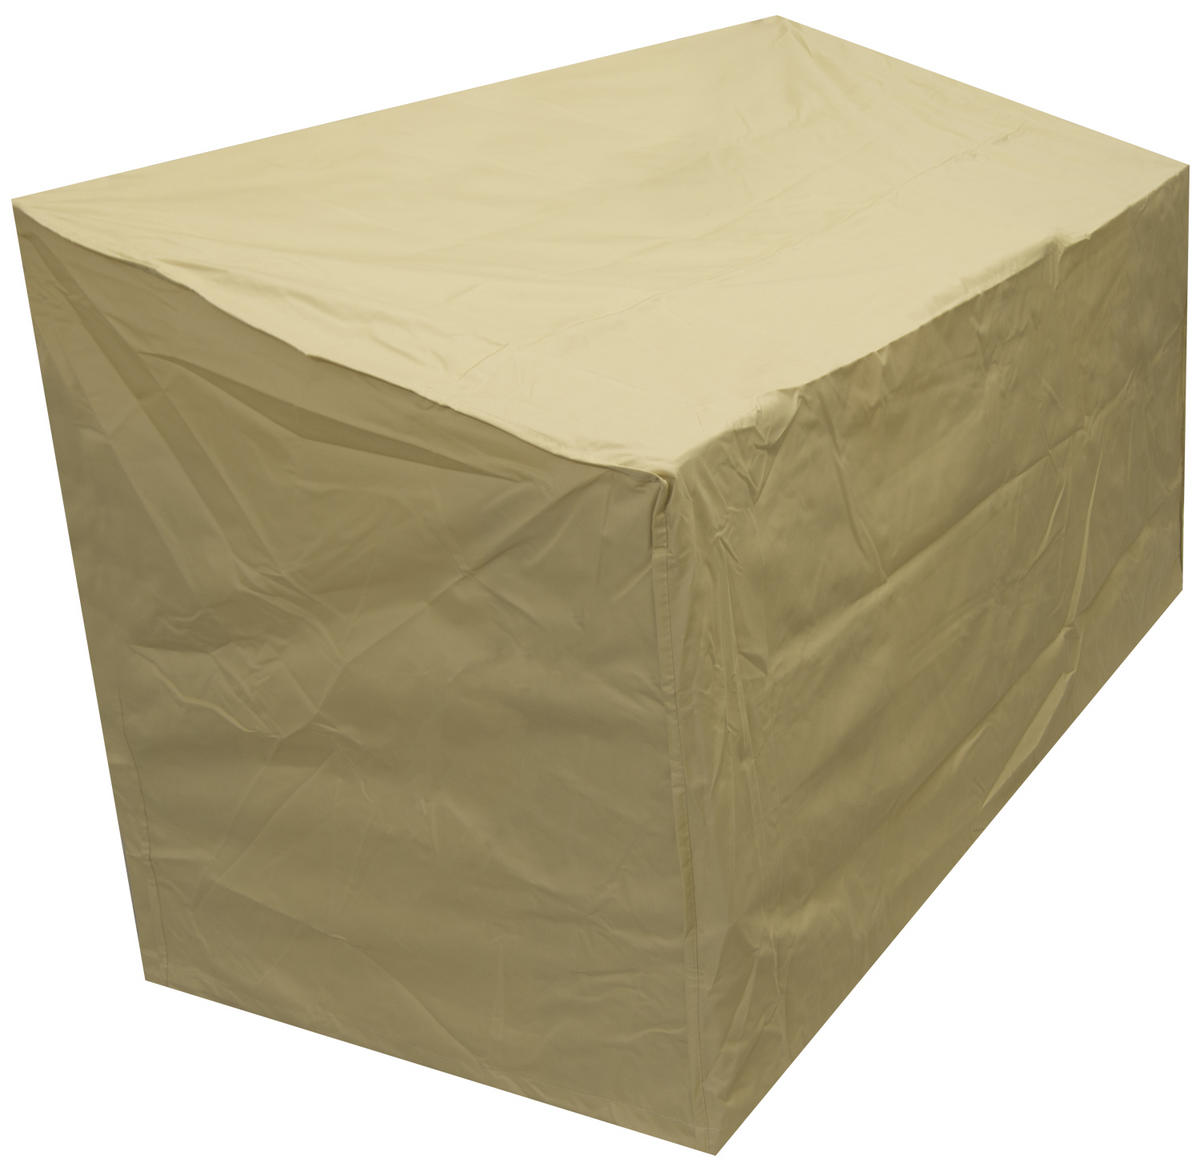 Oxbridge Large (4 Seater) Bench Cover SAND